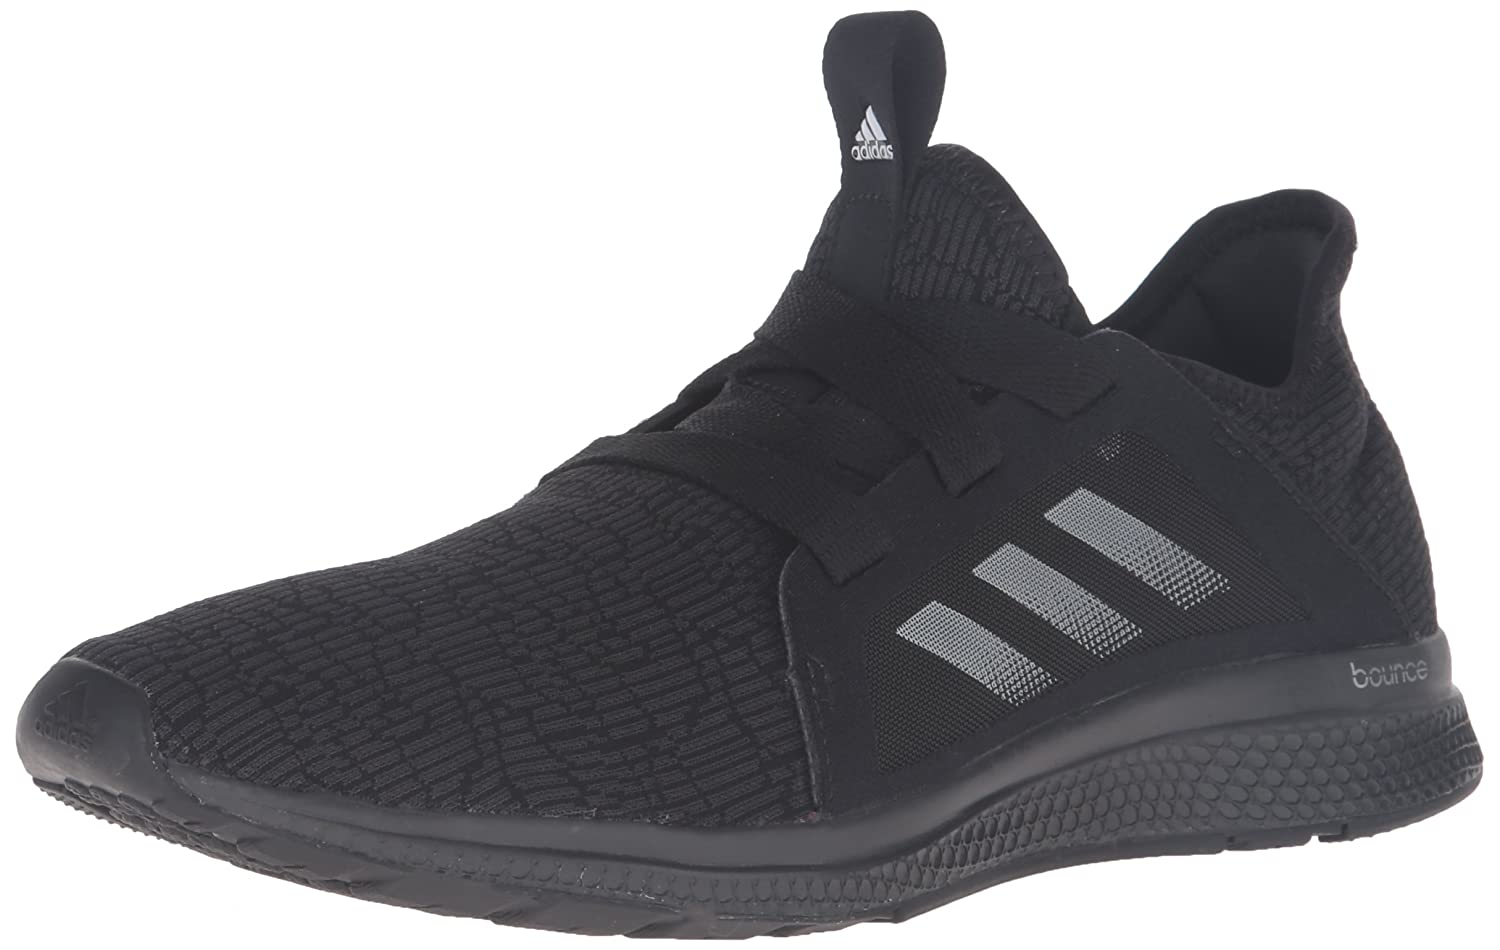 adidas Women's Edge Lux W Running Shoe B01A68B9P0 10 B(M) US|Black/White/Dgh Solid Grey